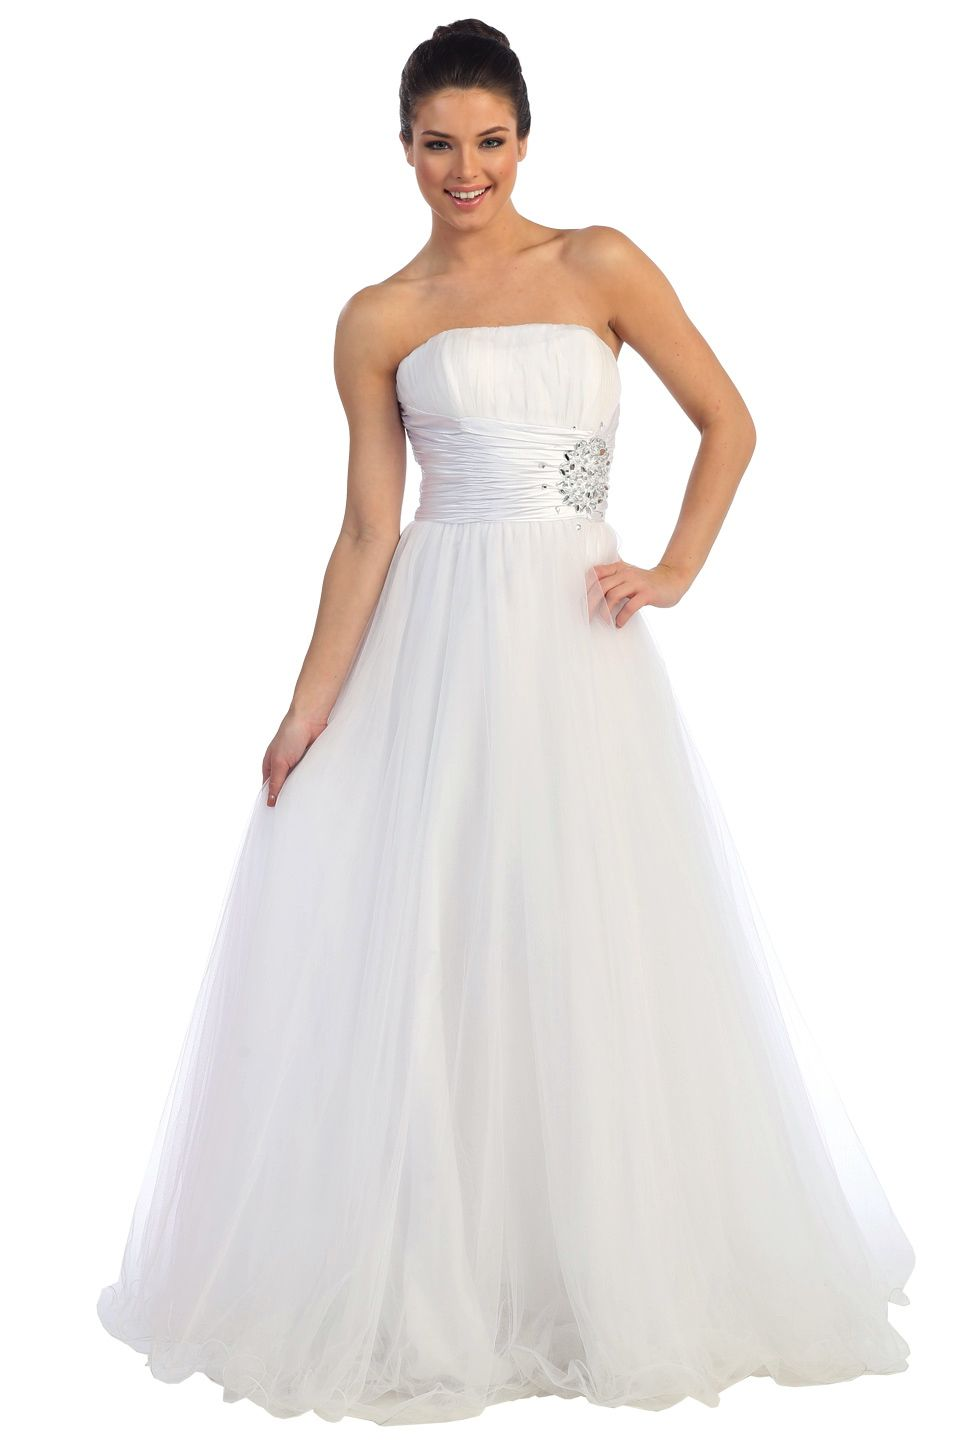 Evening DressWedding Dress under $1508293Split from Ordinary!